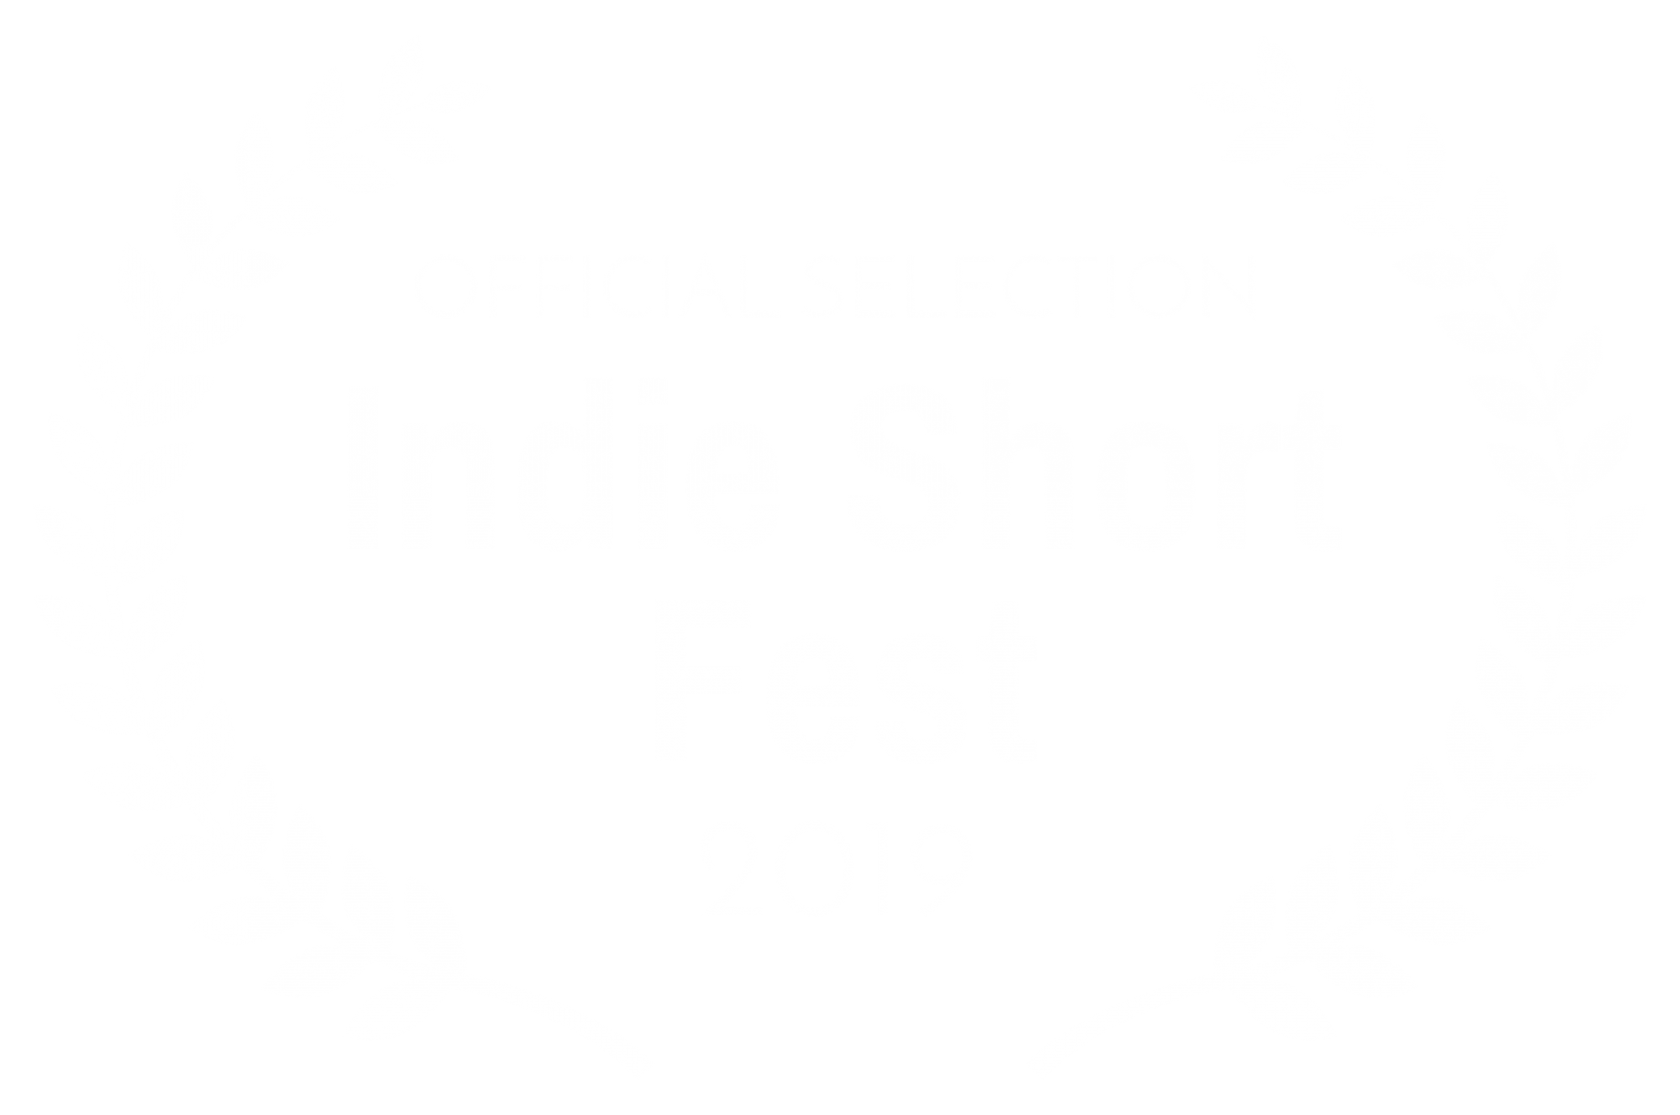 OFFICIAL SELECTION – Indie Short Fest – 2019